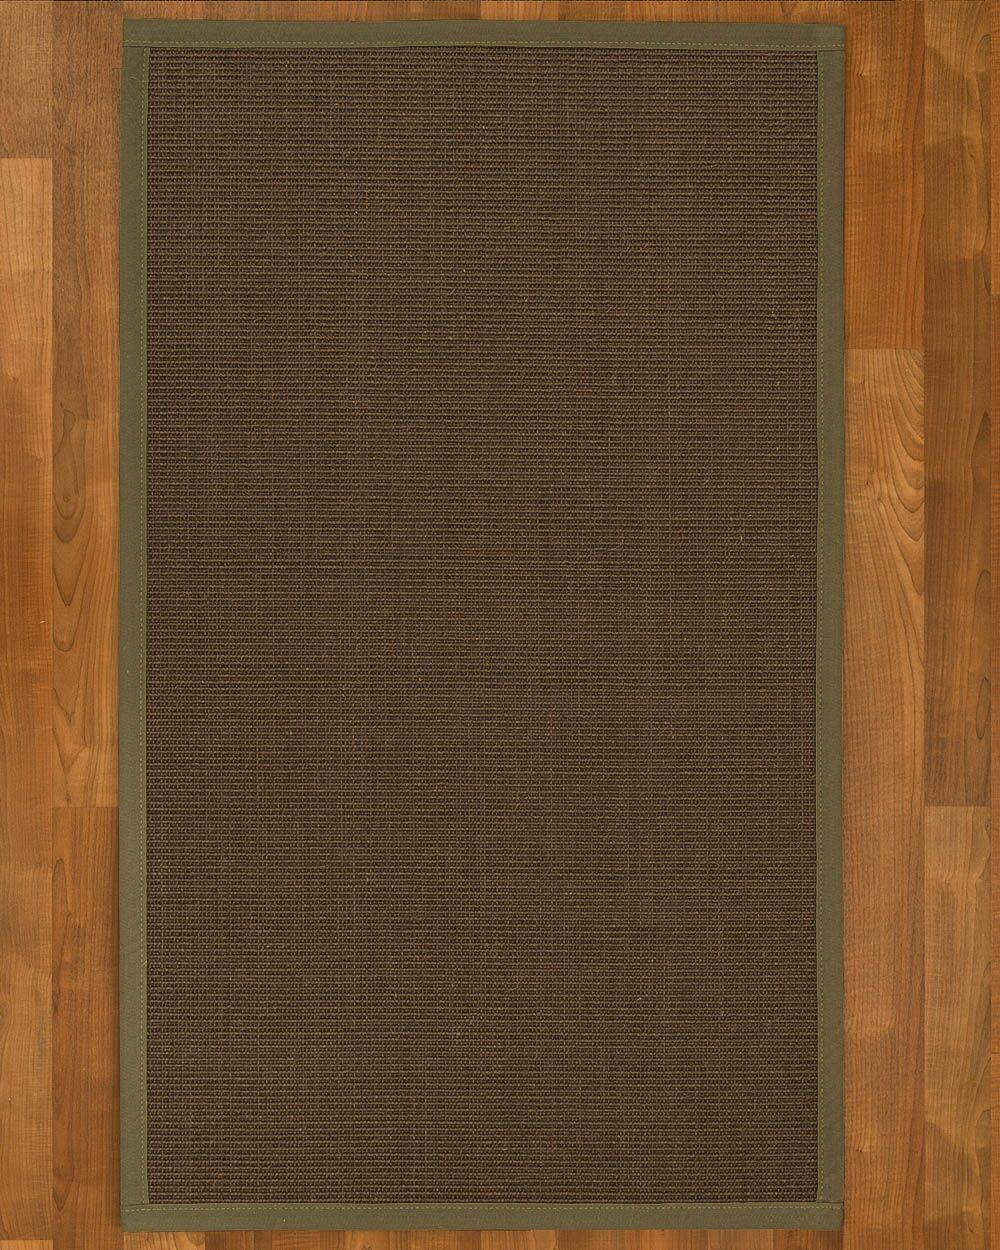 Brokaw Contemporary Hand Woven Sisal Brown Area Rug Rug Size: Rectangle 8' X 10'